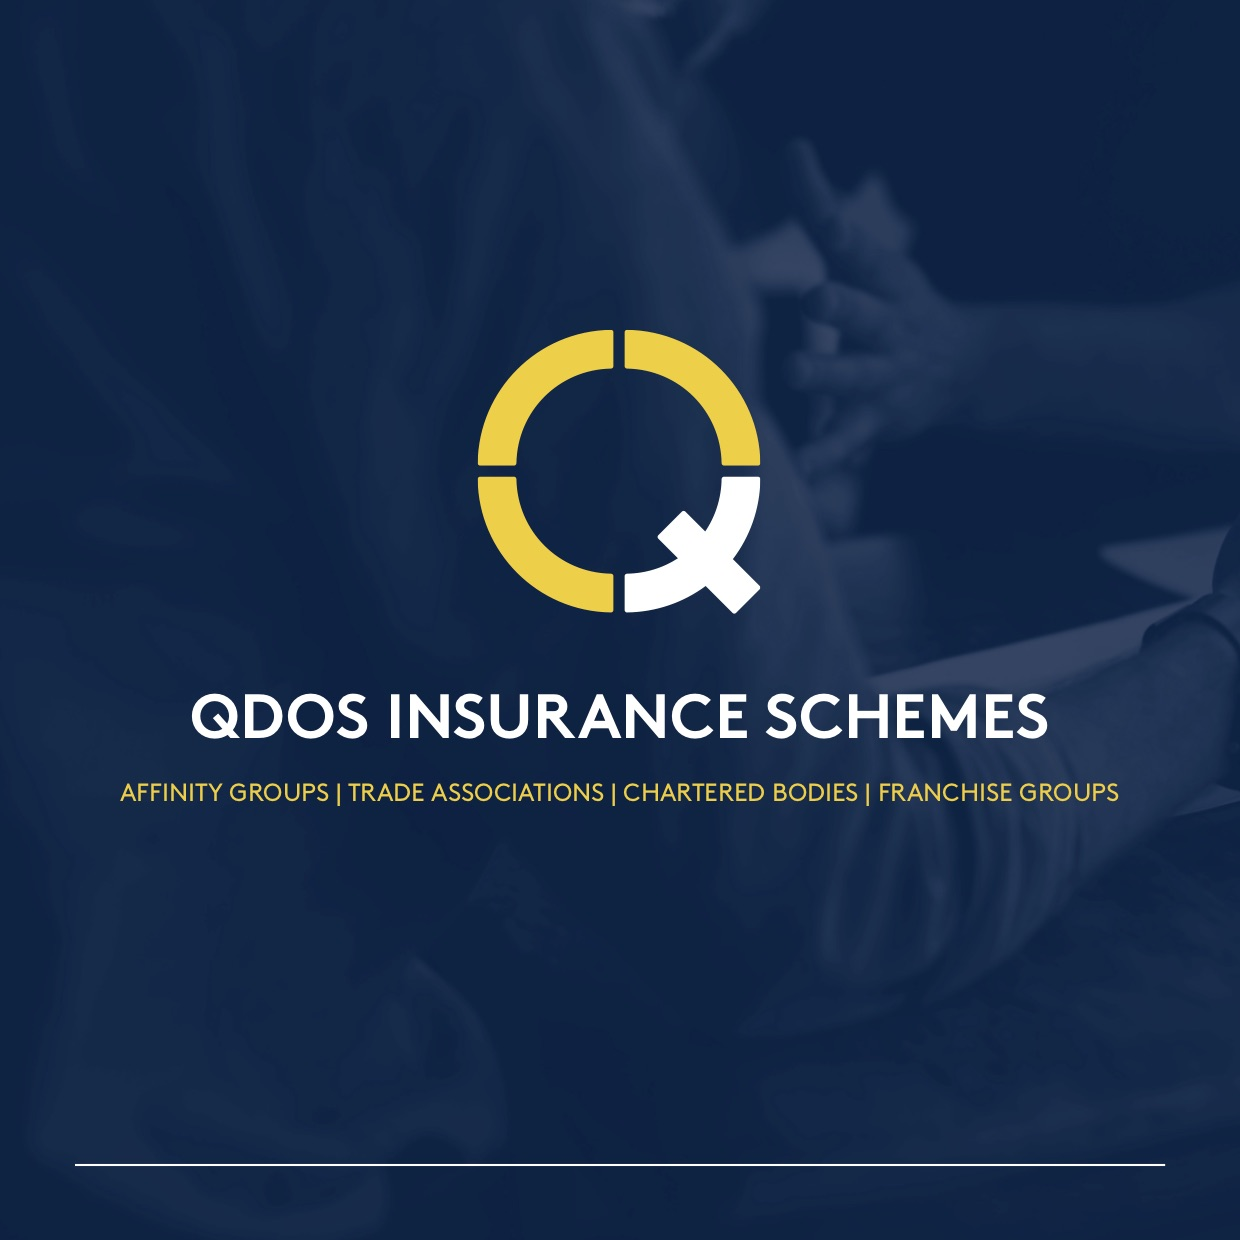 QDOS COMMERCIAL SERVICES PROVIDING YOUR BUSINESS WITH THE TOOLS AND RESOURCES TO MANAGE IR35 CHANGES IN THE PRIVATE SECTOR